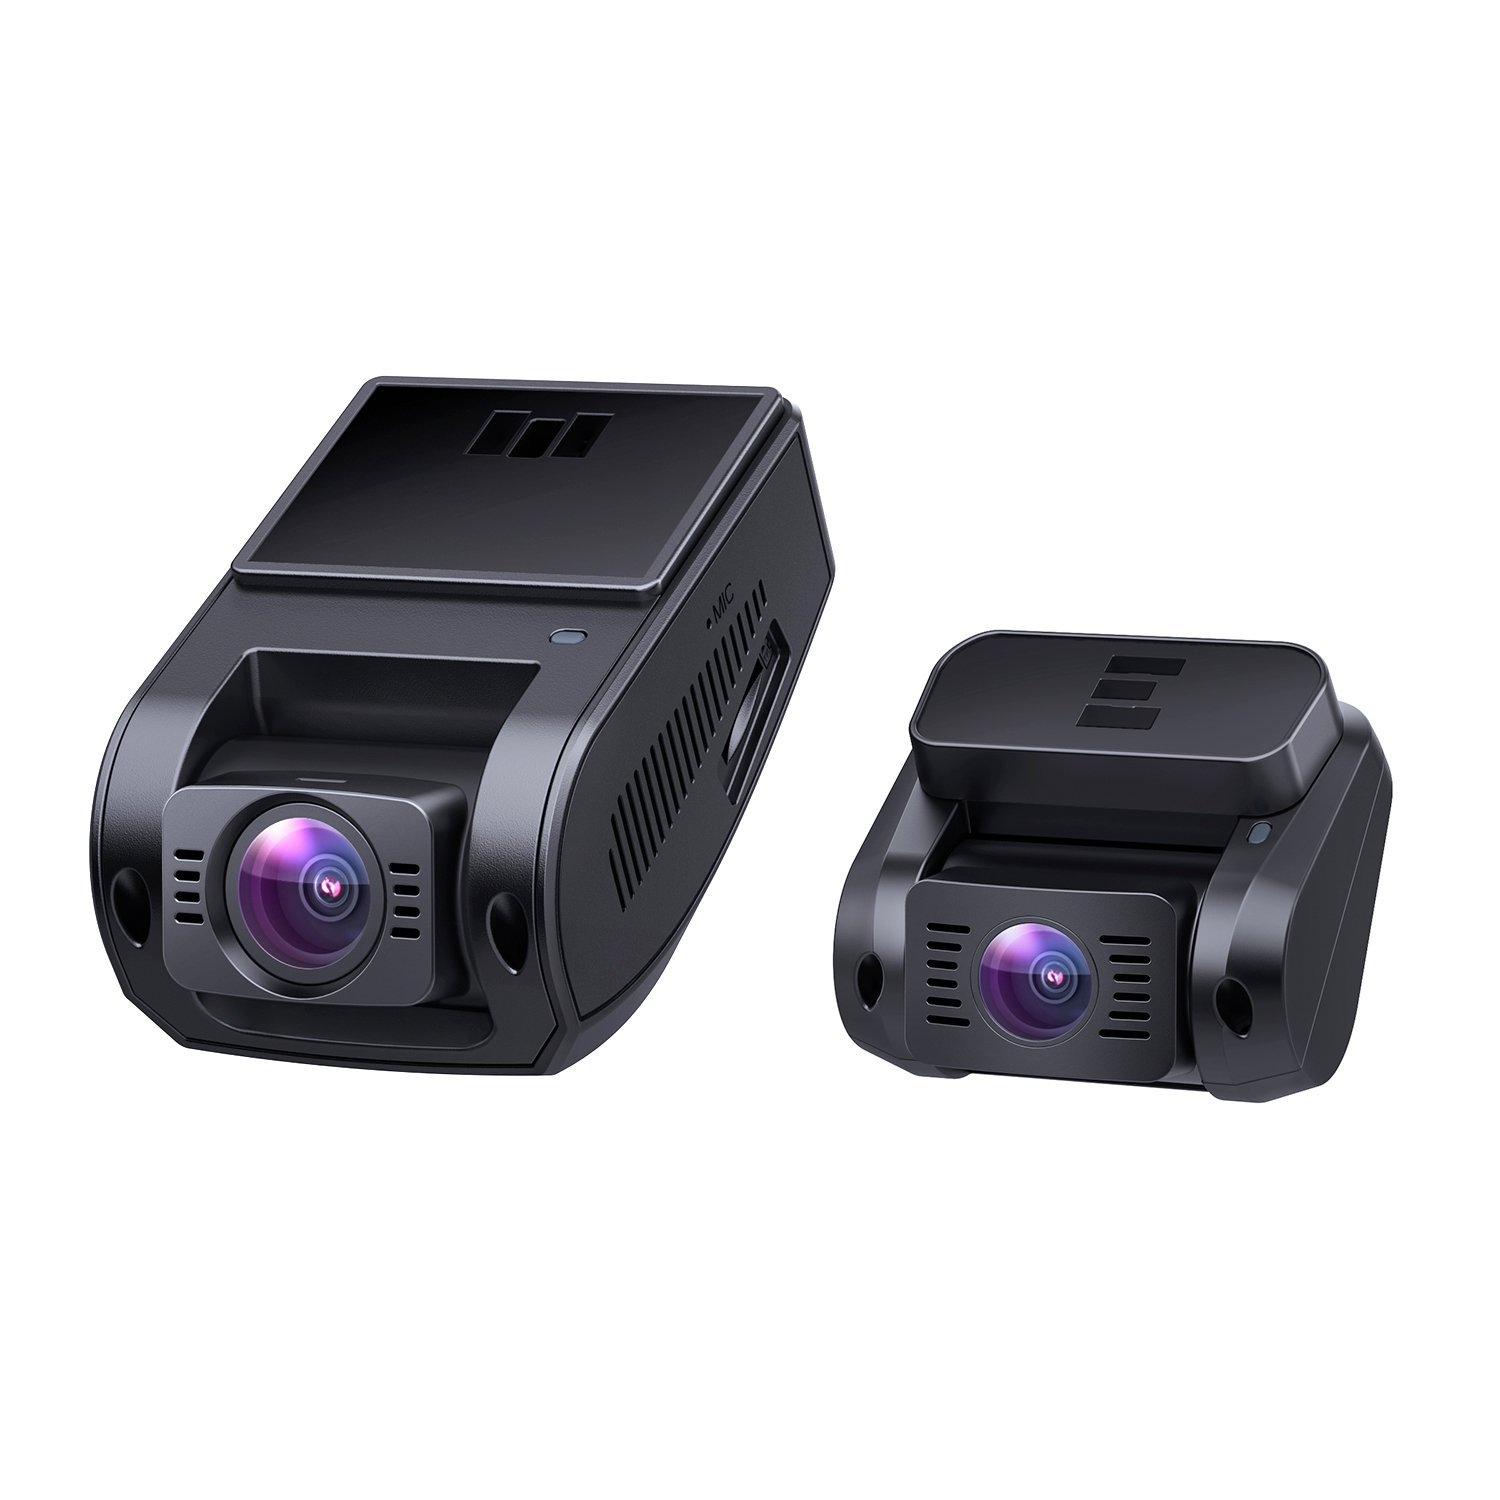 AUKEY Dual Dash Cam HD 1080P Front and Rear Camera Car Camera Supercapacitor 6-Lane 170 Degrees Wide-Angle Lens Dashcam with Night Vision, Loop, G-Sensor, Motion Detection and Dual-Port Car Charger by AUKEY